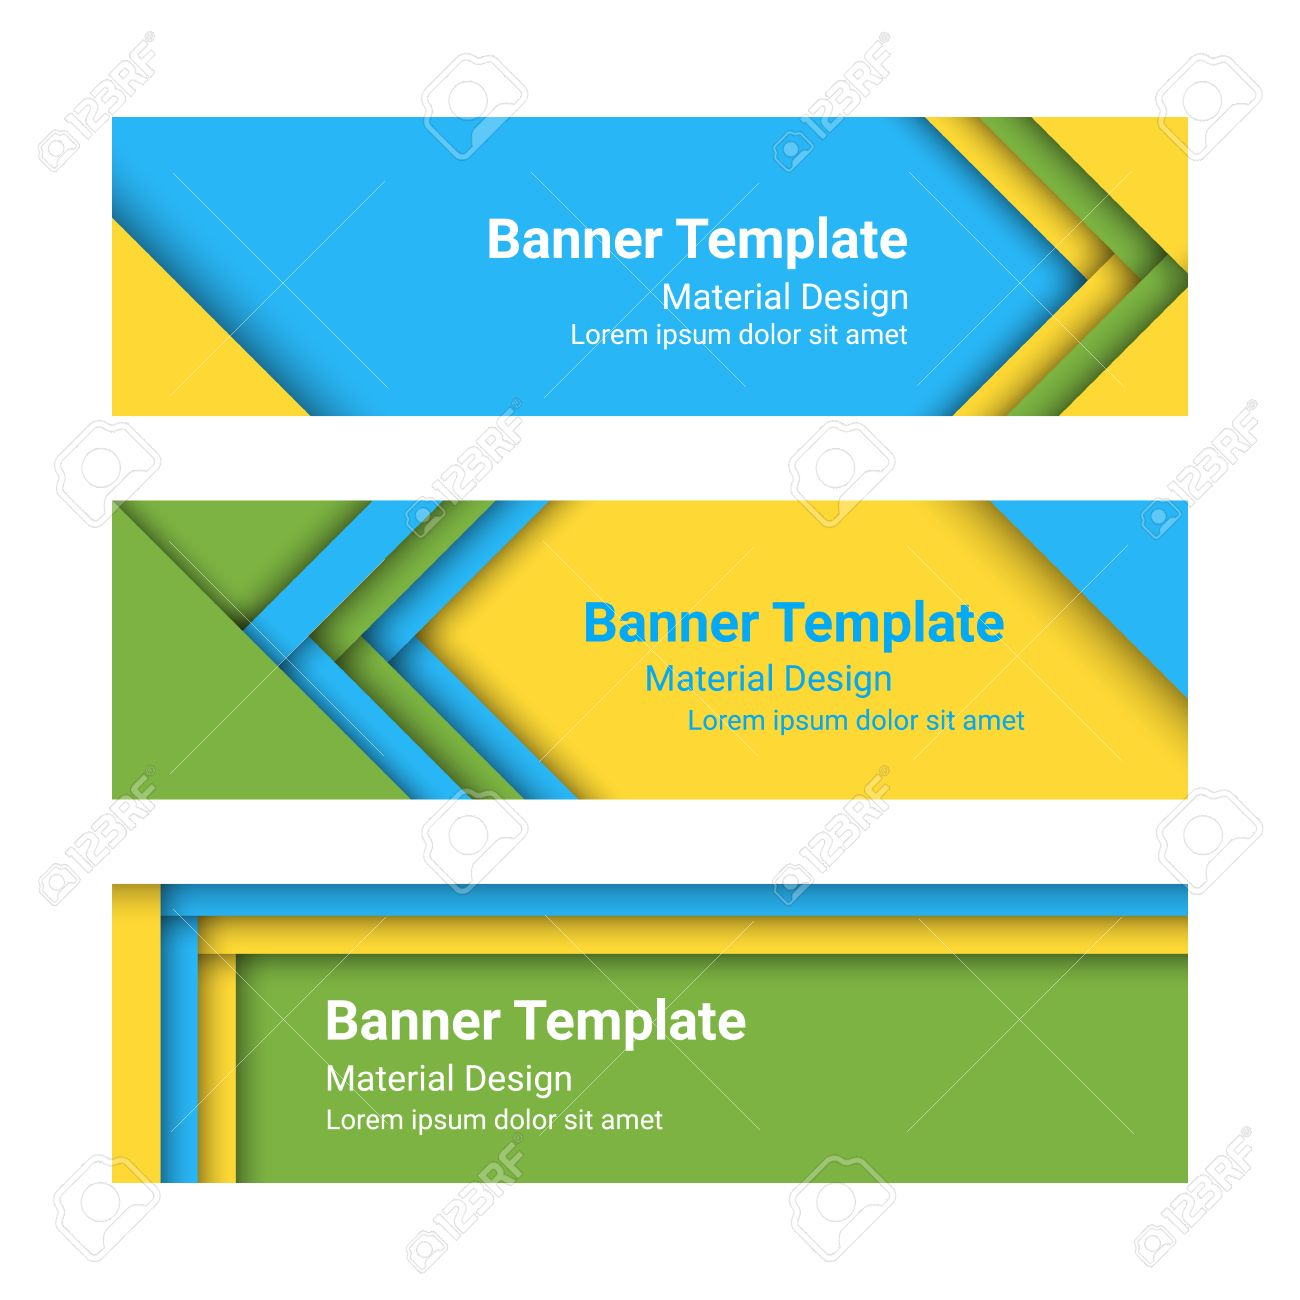 Design vector banner - Set Of Modern Horizontal Vector Banners In A Material Design Style Stock Vector 50584523